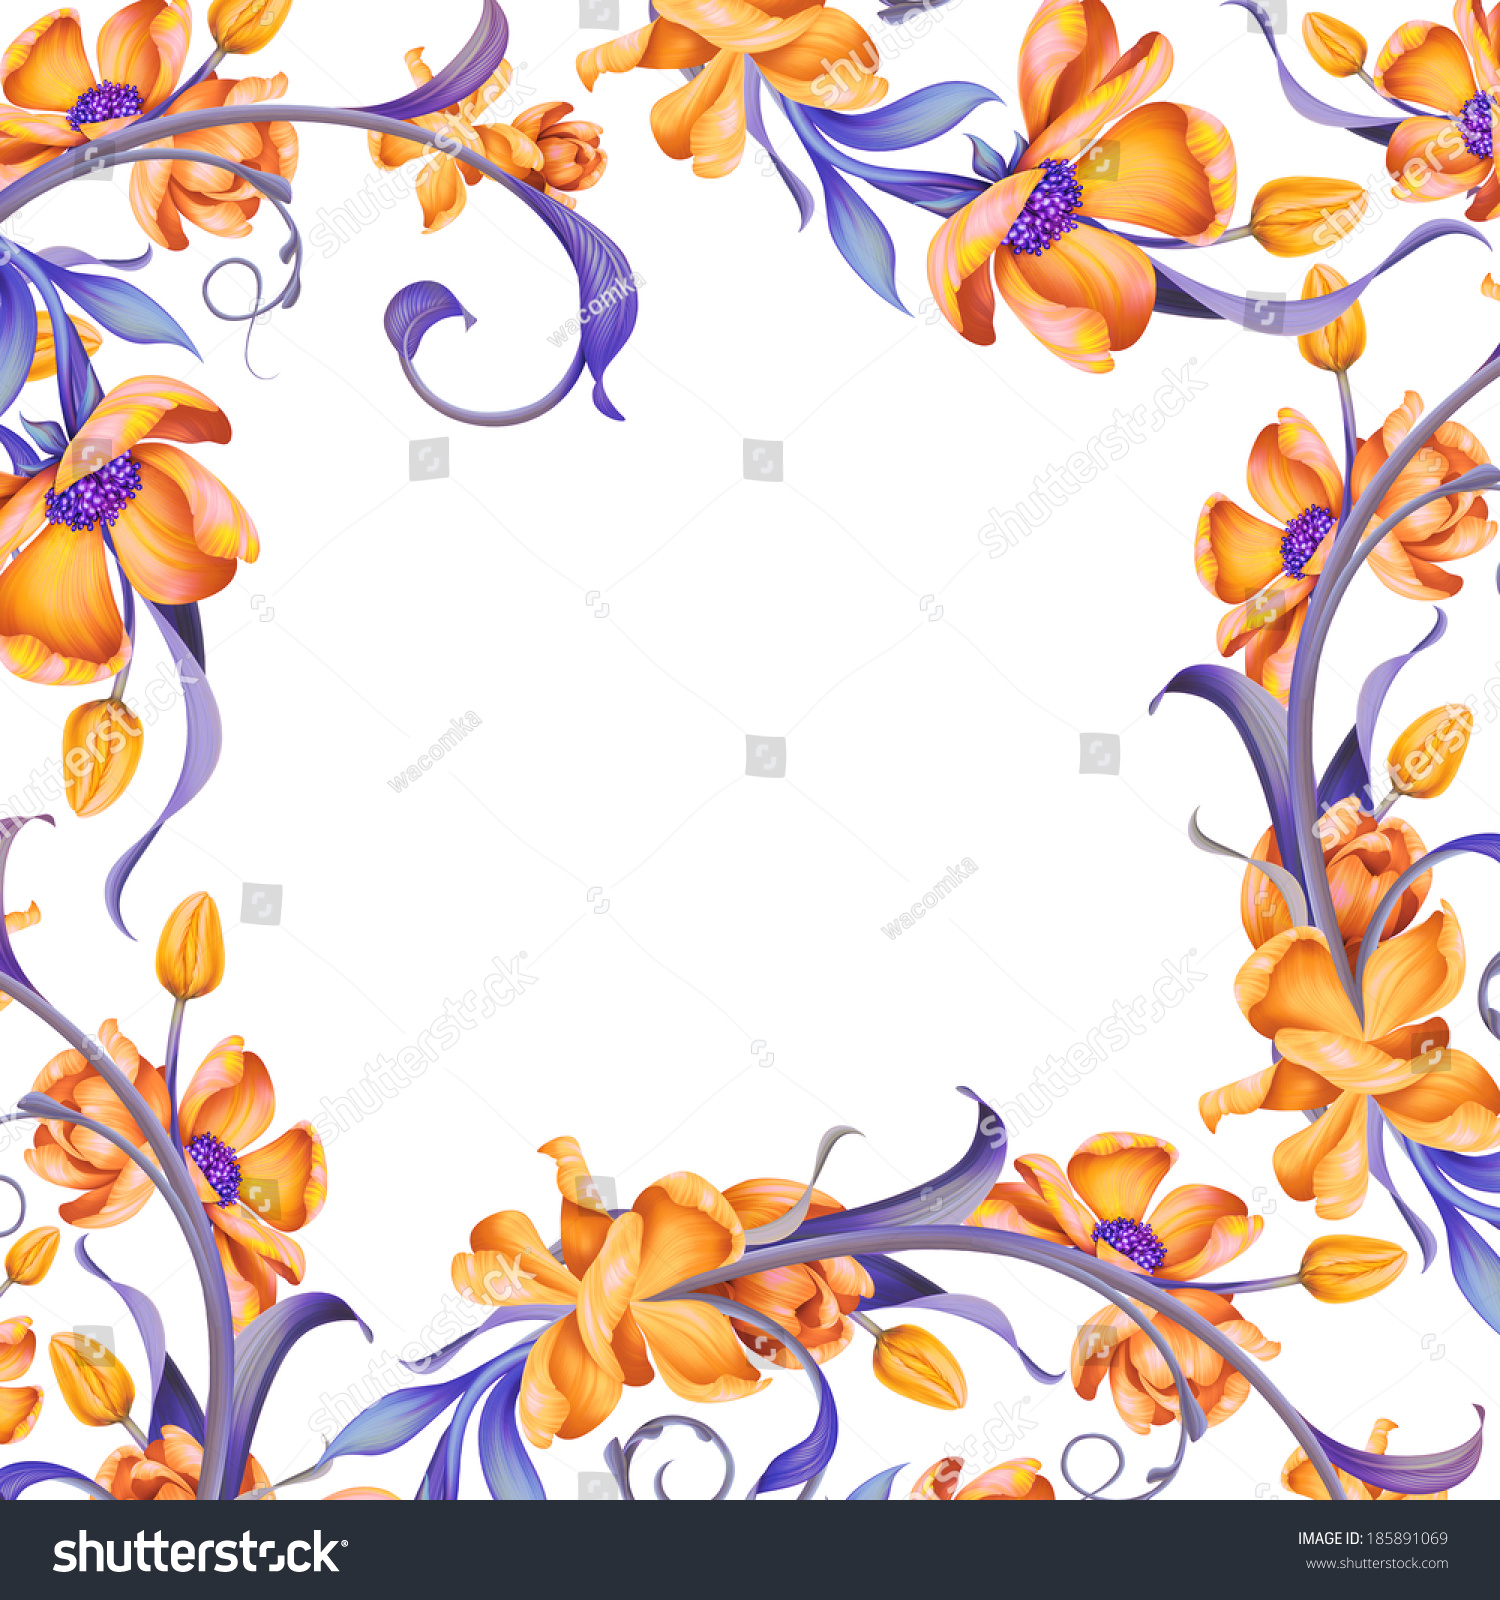 Decorative Black Flower Border Stock Image: Beautiful Floral Frame Decorative Page Border Stock